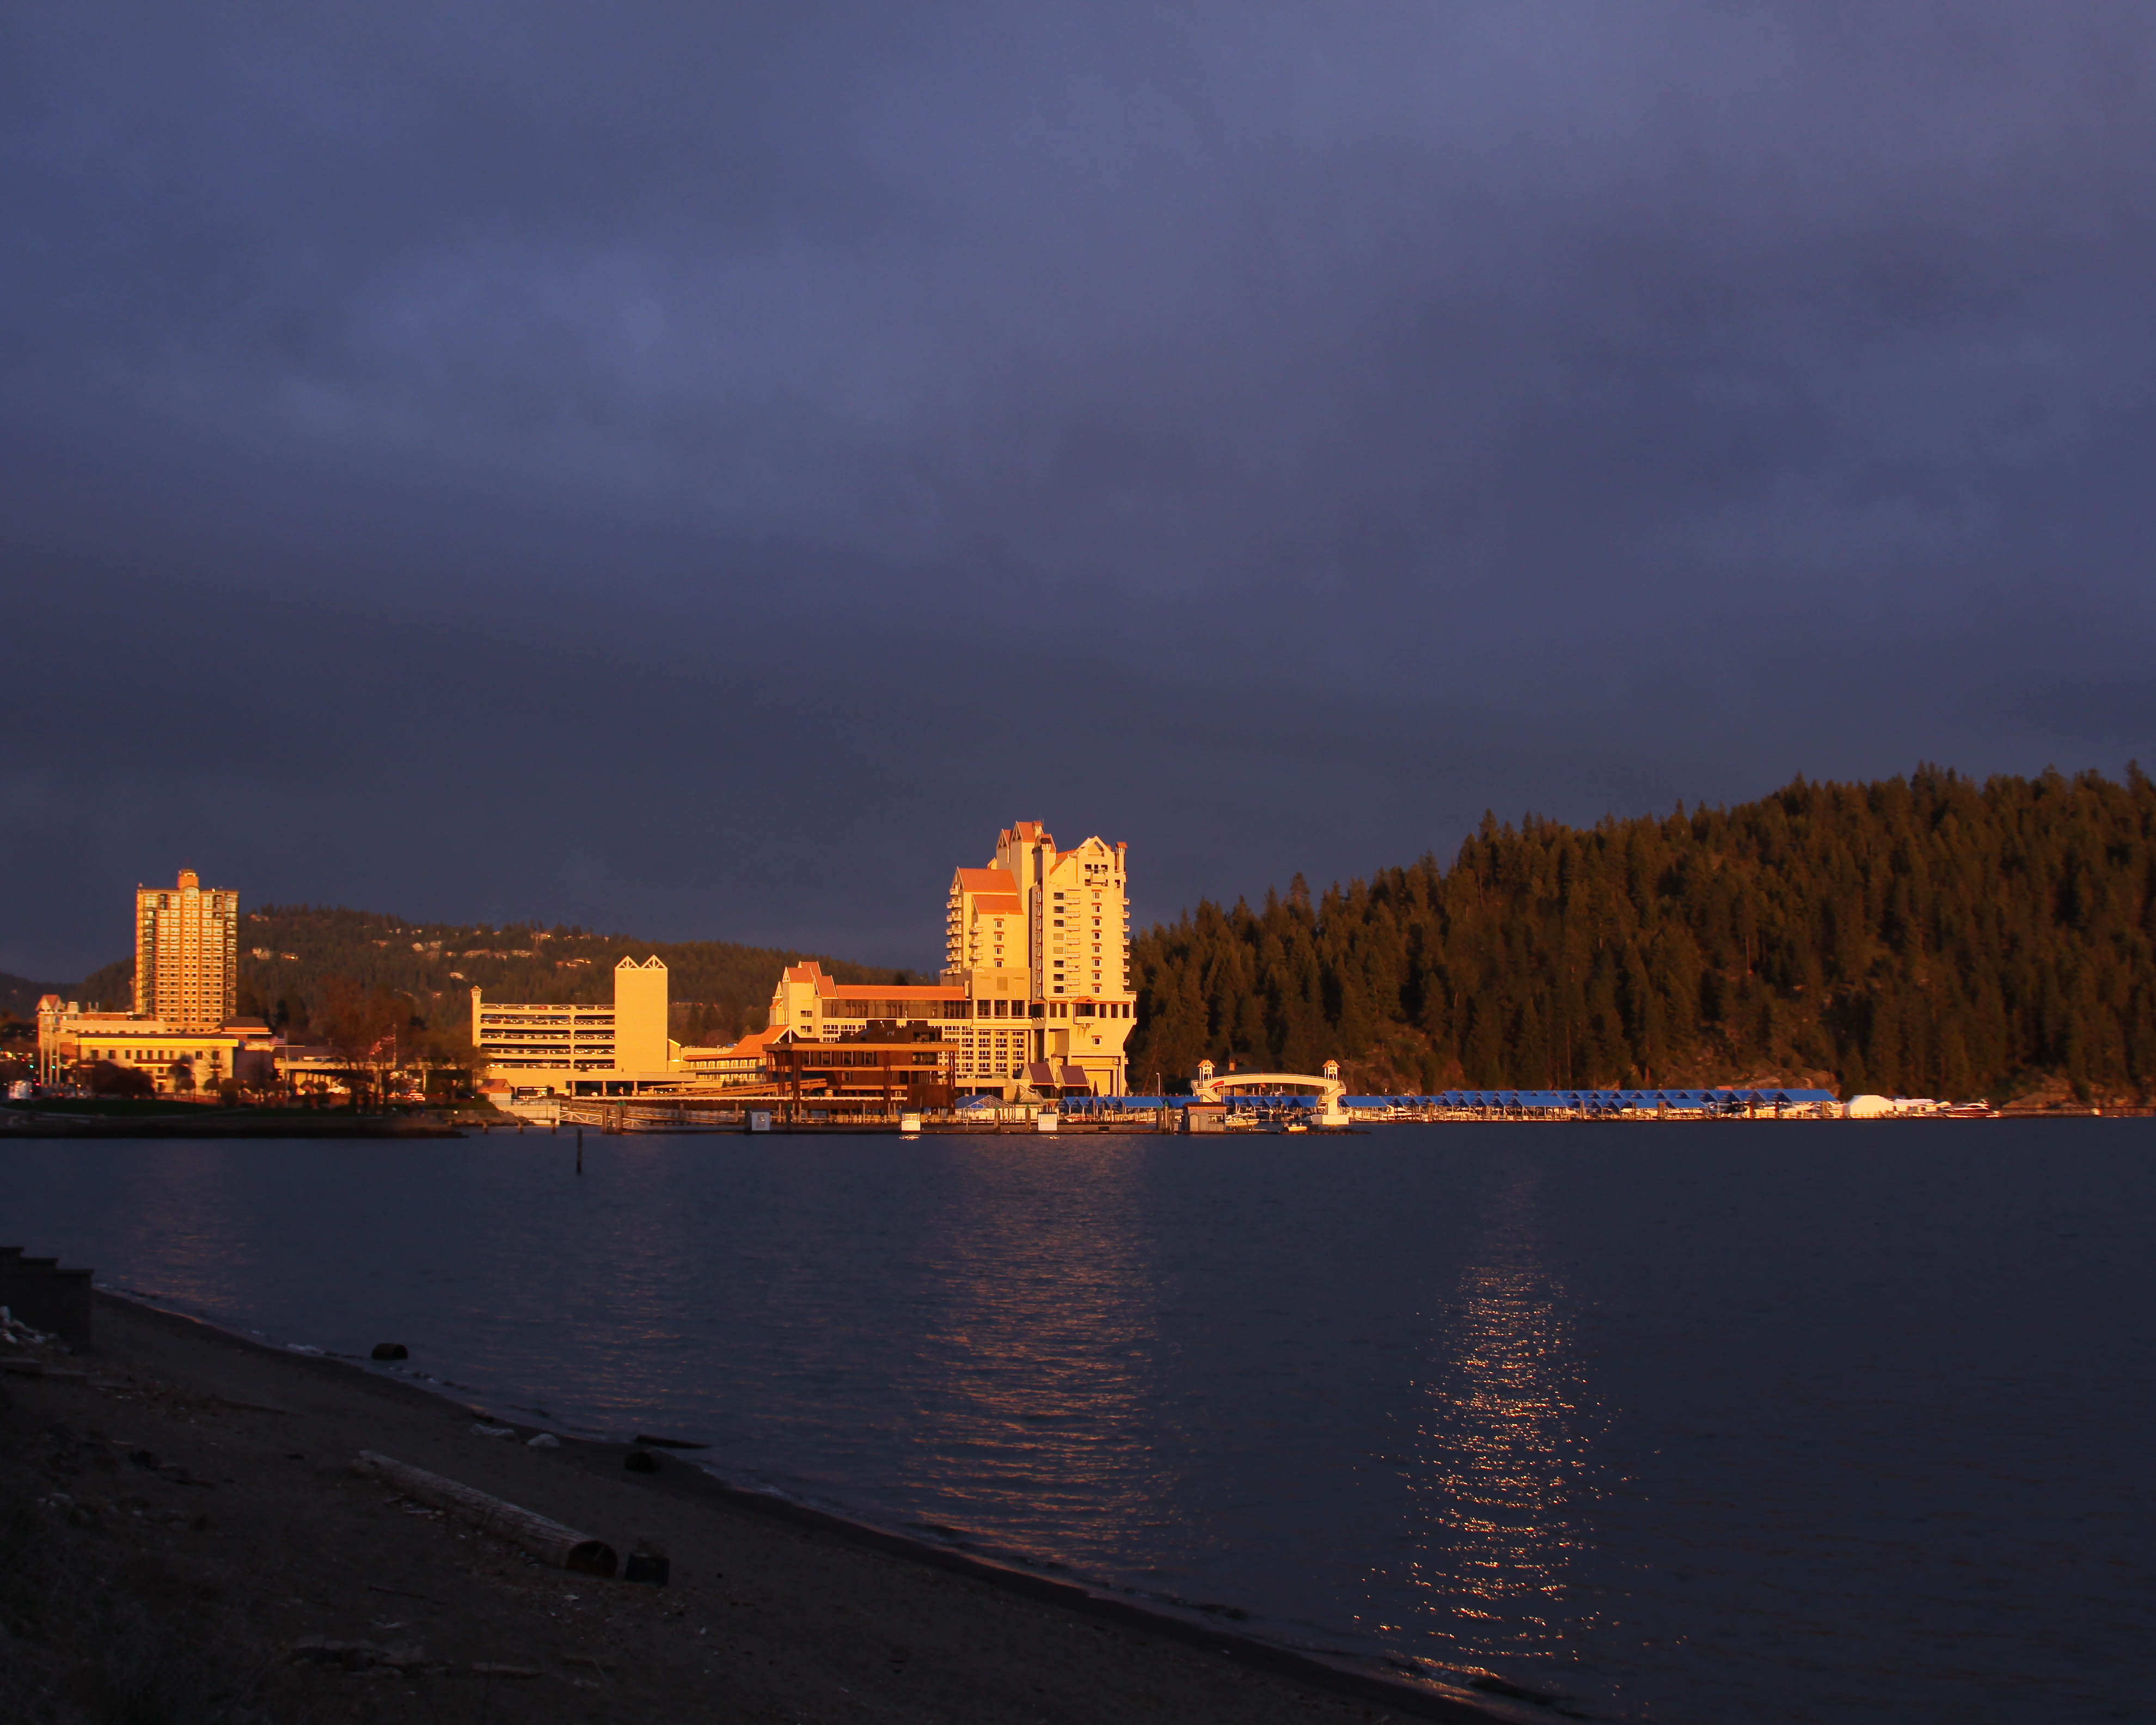 Coeur d'Alene Resort at Sunset